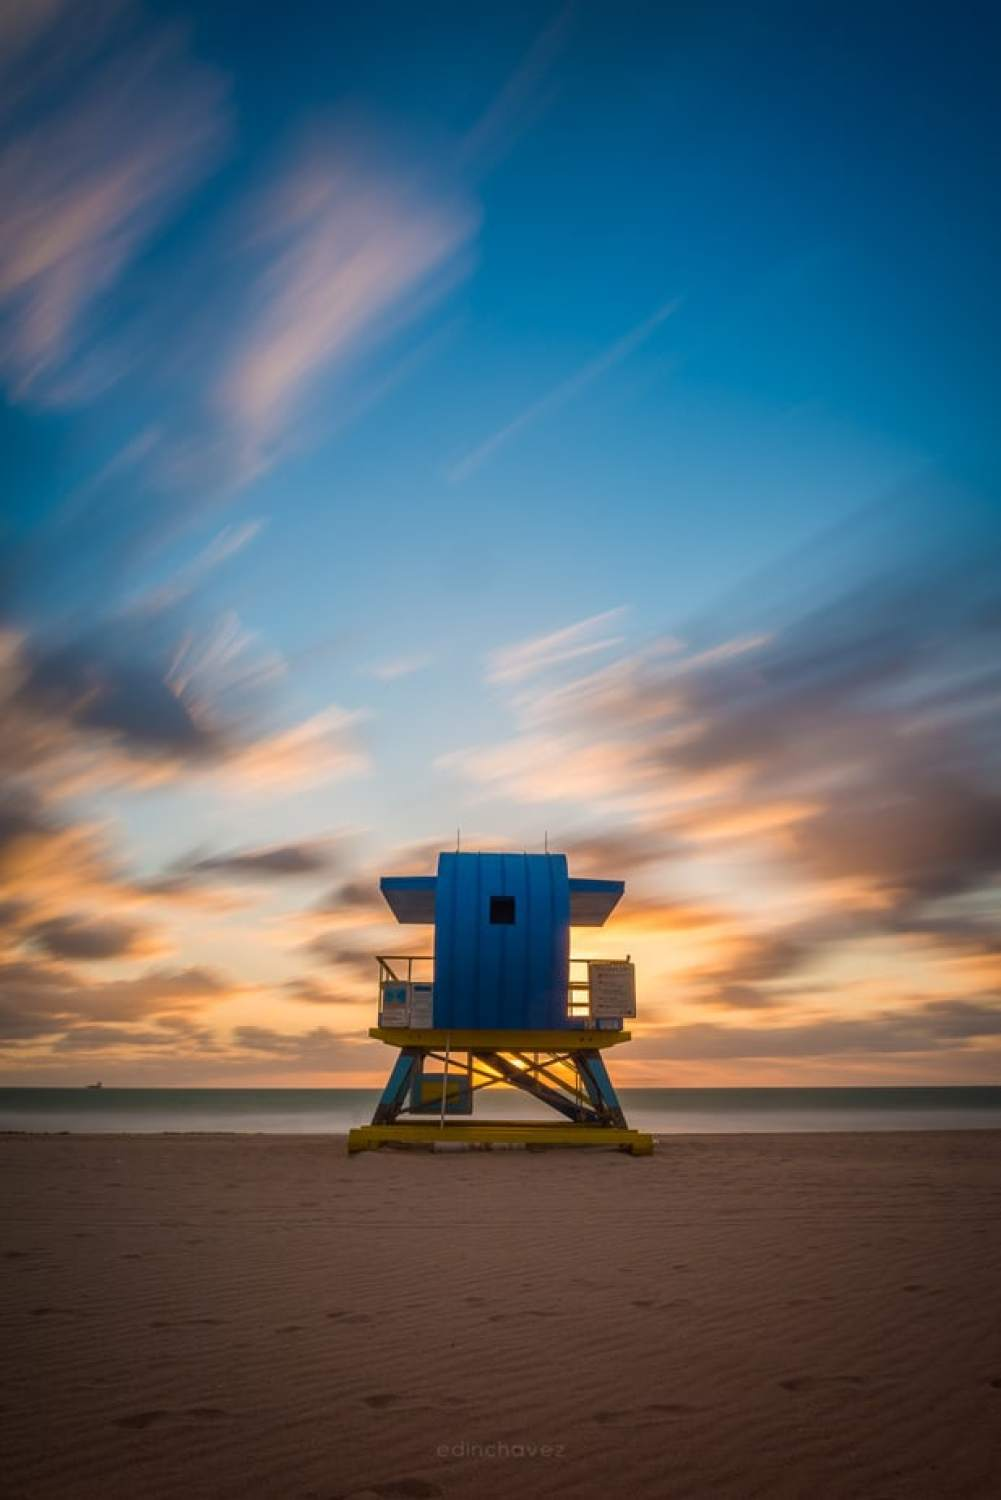 Windy morning in Miami - image  on https://blog.edinchavez.com